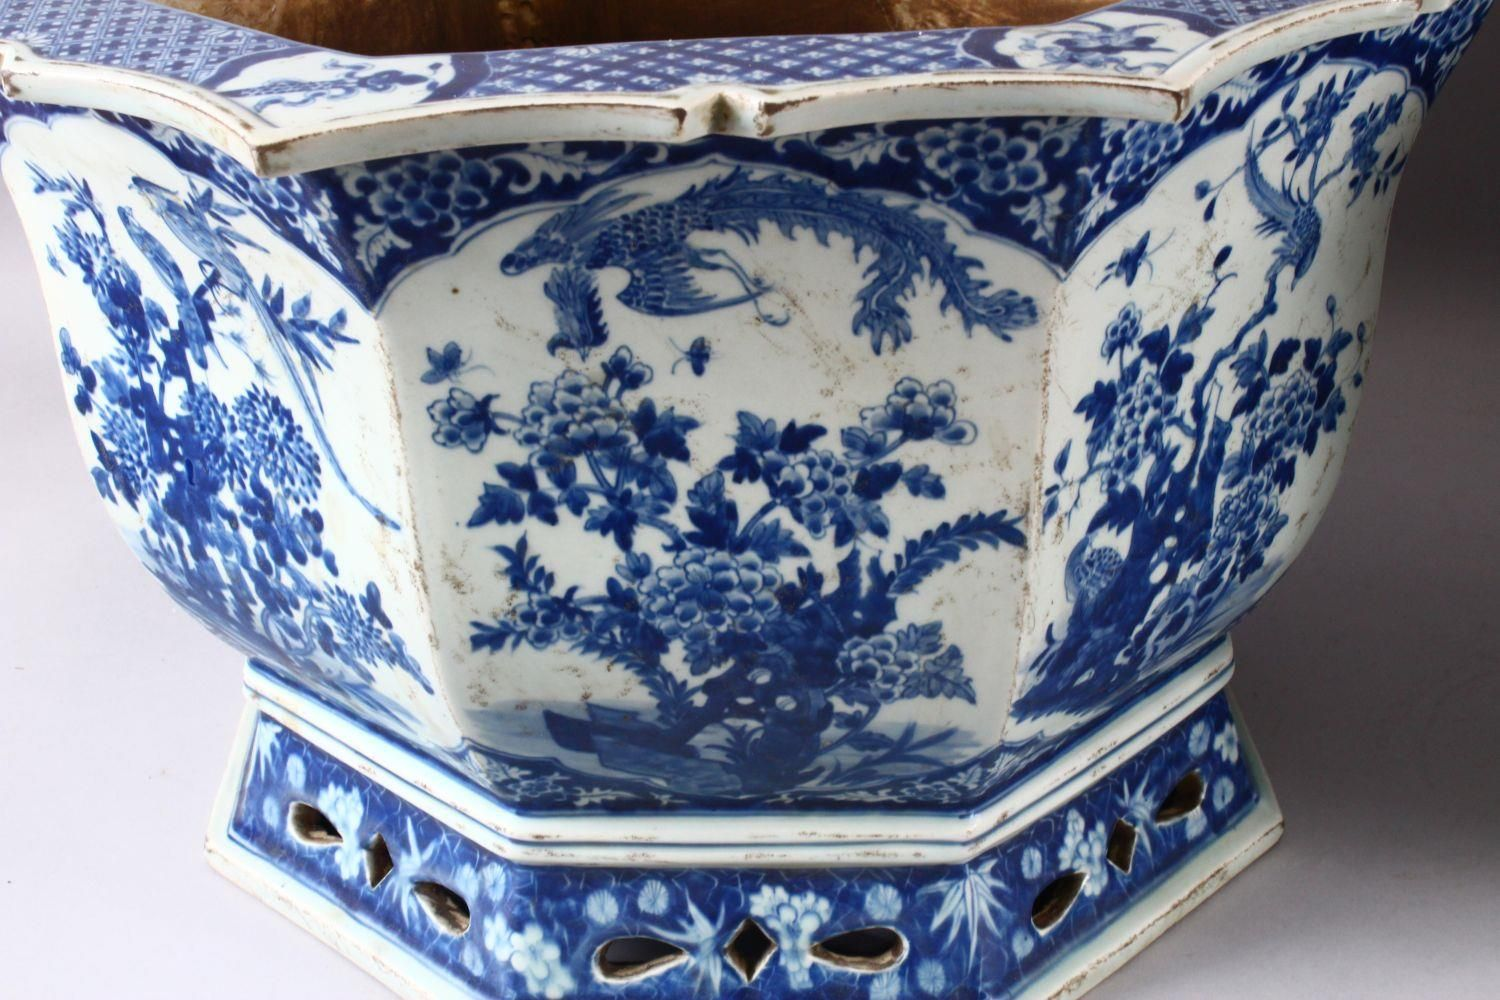 A PAIR OF LARGE CHINESE BLUE & WHITE OCTAGONAL PORCELAIN JARDINIERE / PLANTERS, decorated with - Image 6 of 8